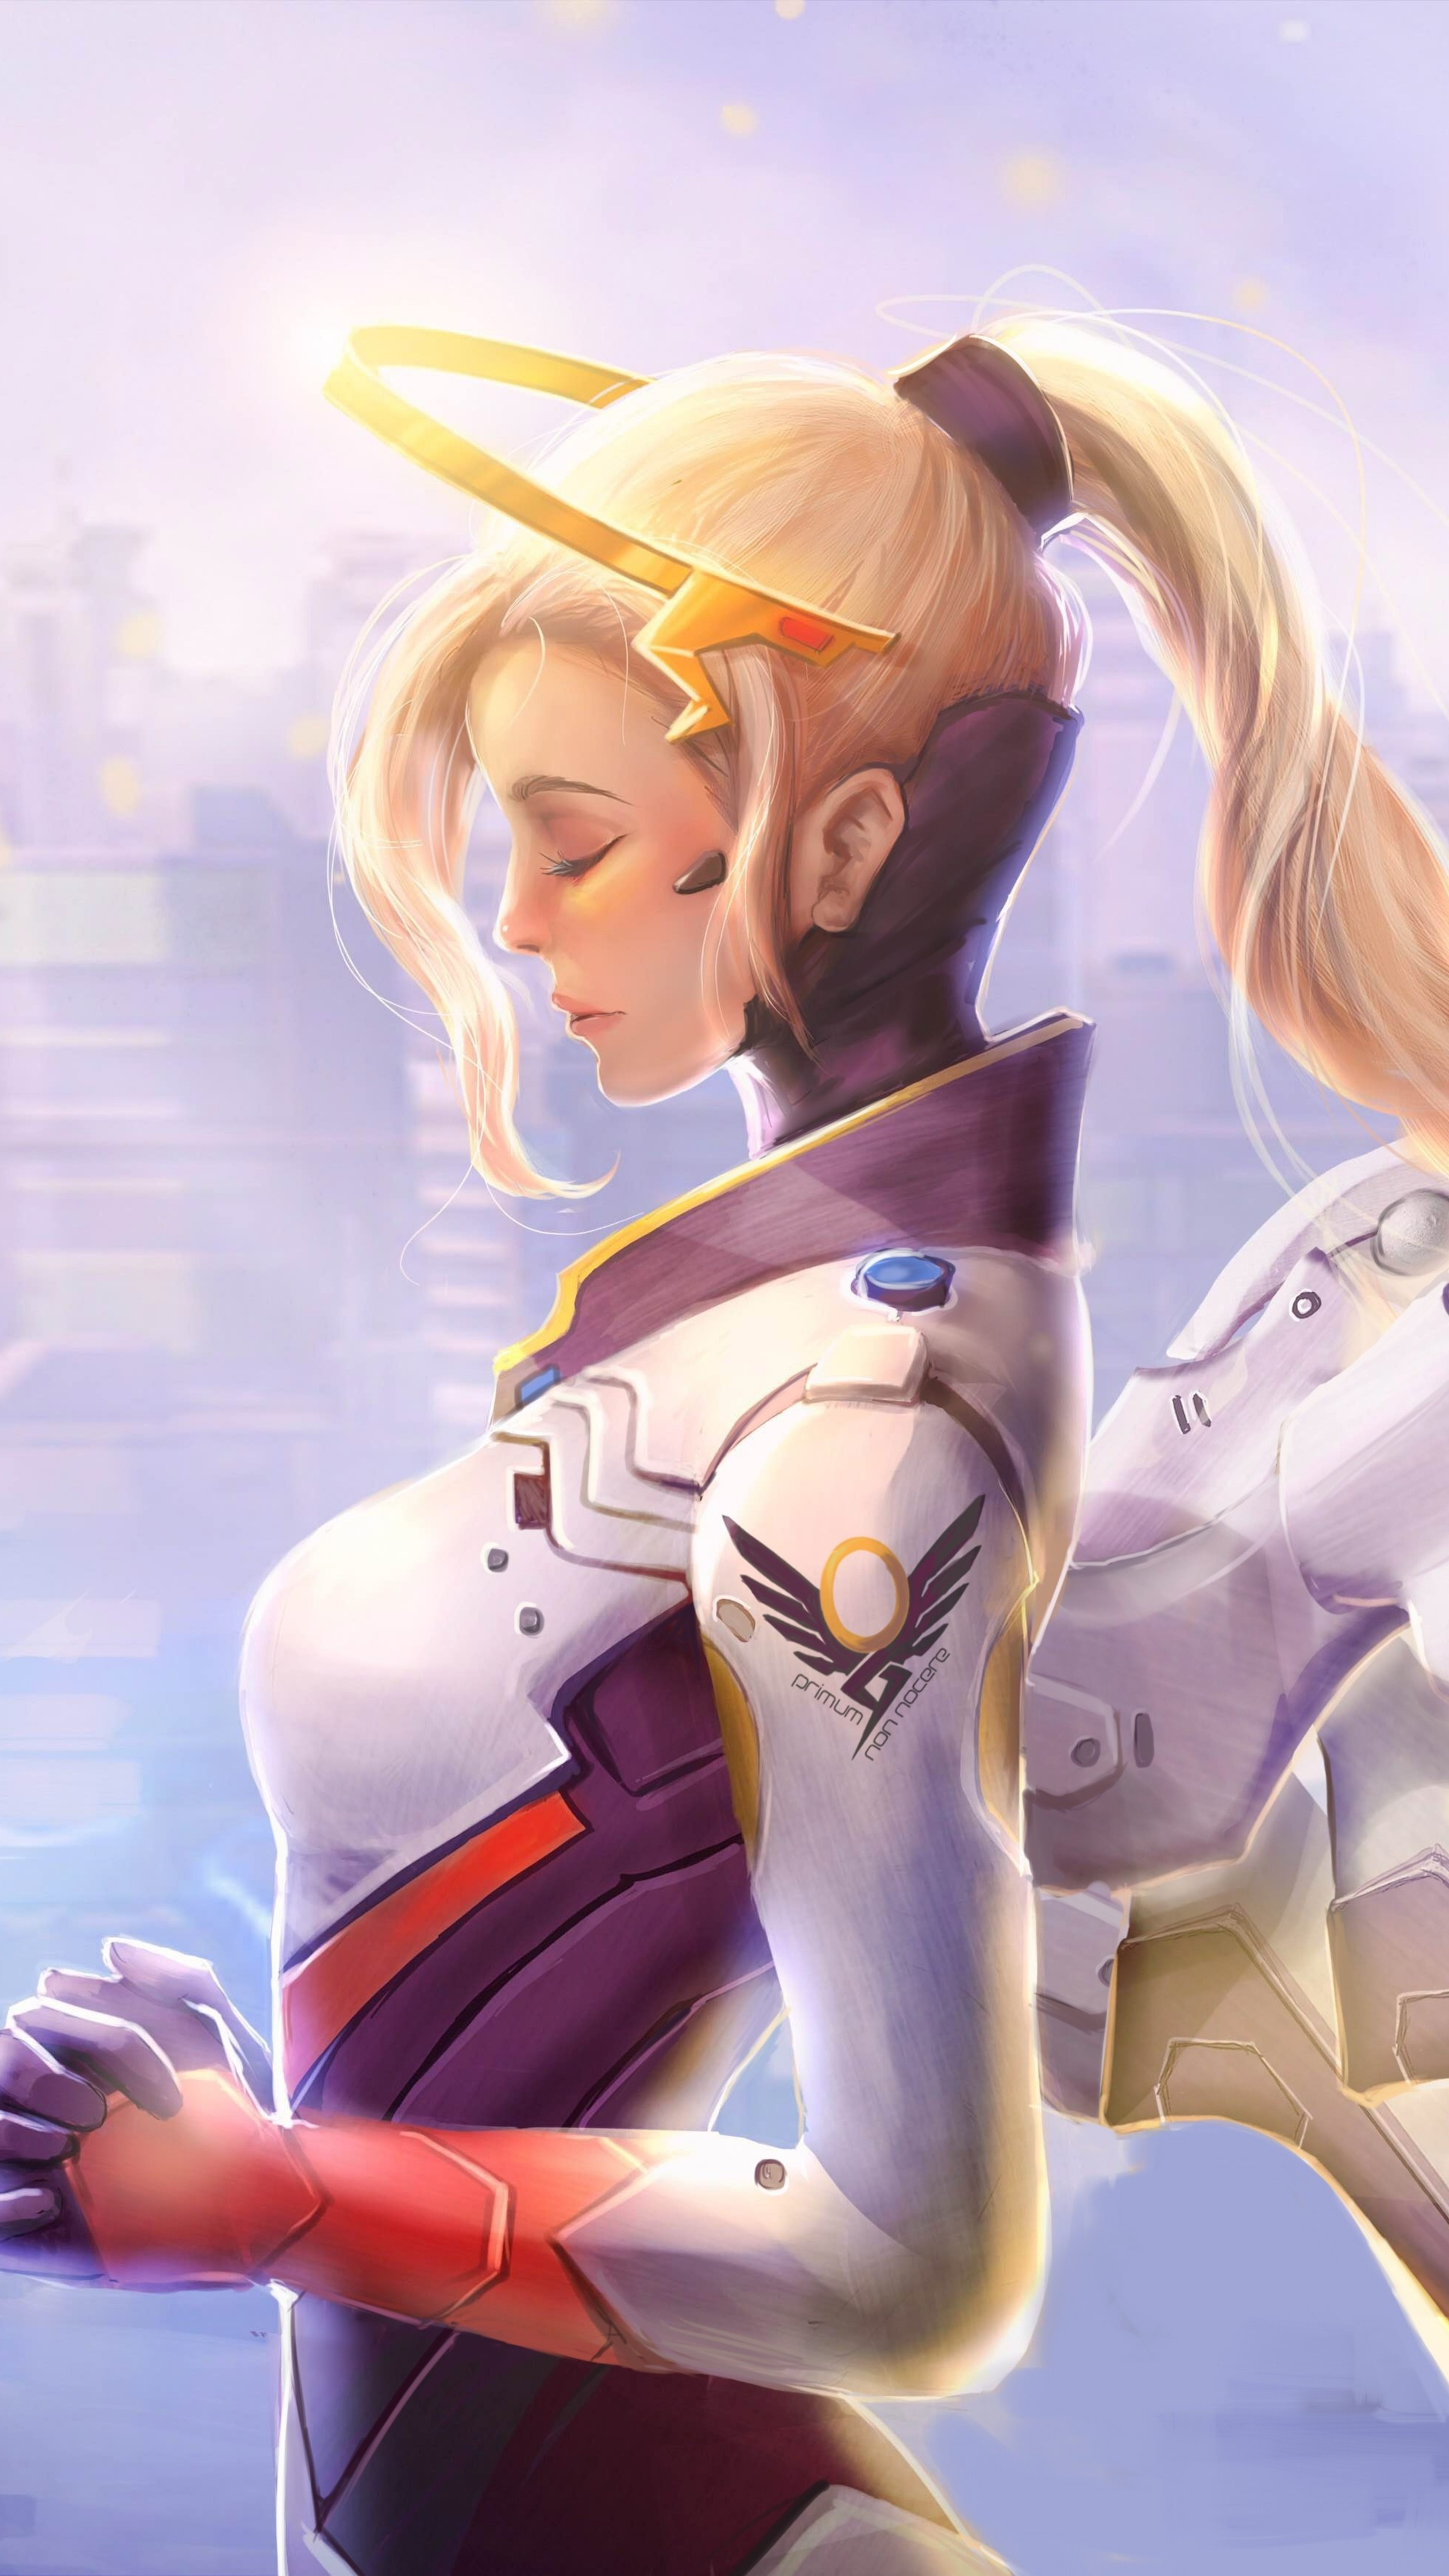 mercy-overwatch-artwork-5k-fv.jpg